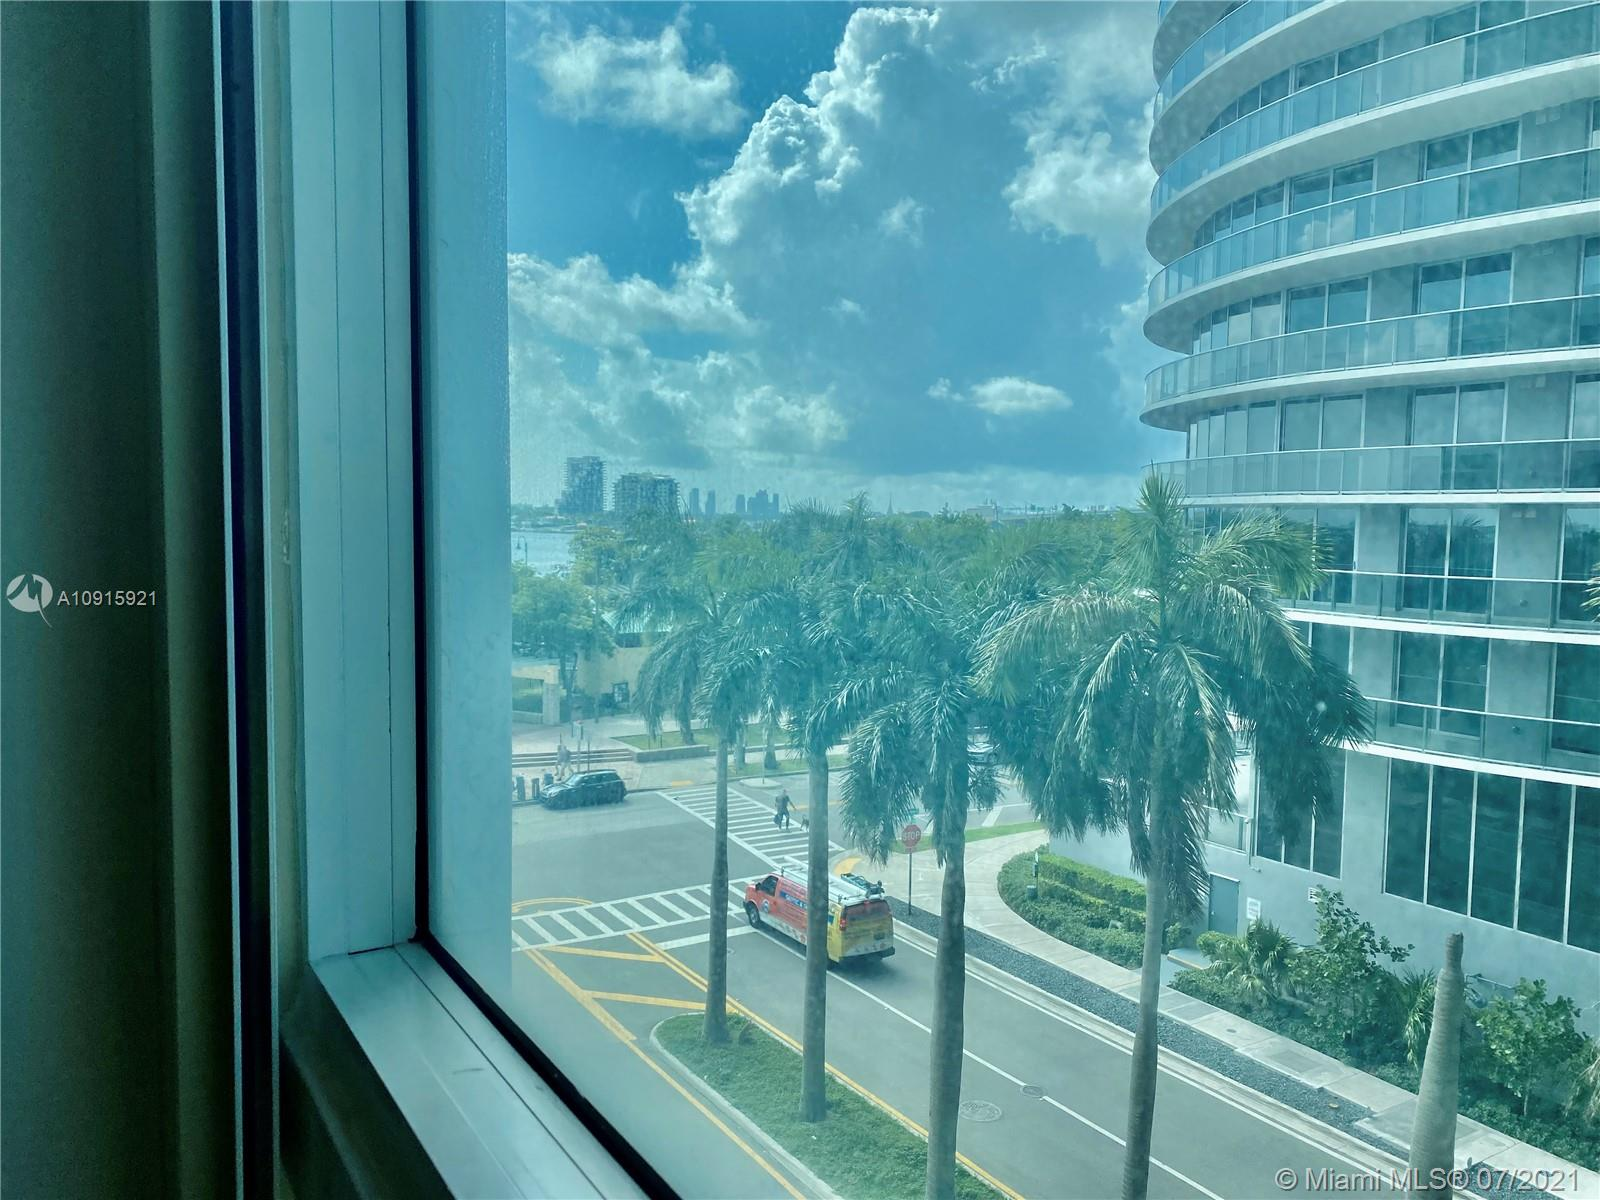 SPECTACULAR HUGE 1249 SQ FT LIVE/WORK SPACE/LOFT 12FT CEILINGS W/IN CLOSED BEDROOM IN EDGEWATER AT THE 1800 CLUB.PRESENTLY UNIT IS COMBINED W/UNIT 408 ALSO AVAILABLE W/1548 SQFT FOR A TOTAL OF 2797 SQFT.CAN BE SOLD TOGETHER FOR A COST OF $849,800 OR SEPARATE.MAINTENANCE INCLUDES CABLE,INTERNET WATER &1 PARKING IN THE SAME FLOOR.BUY UNIT W/AS LITTLE AS 5% DOWN IF YOU QUALIFY.FULL SERVICE BUILDING.WALK TO PARK,SHOPS,PUBLIX,BANKS,CAFES & SO MUCH MORE.5 MINUTES TO SOUTH BEACH, BRICKELL, DOWNTOWN, AAA,THE PERFORMING ARTS CENTER,MIDTOWN, DESIGN DISTRICT & EVERYTHING THAT IS HAPPENING IN NEW URBAN MIAMI.EASY TO SHOW CALL TODAY.